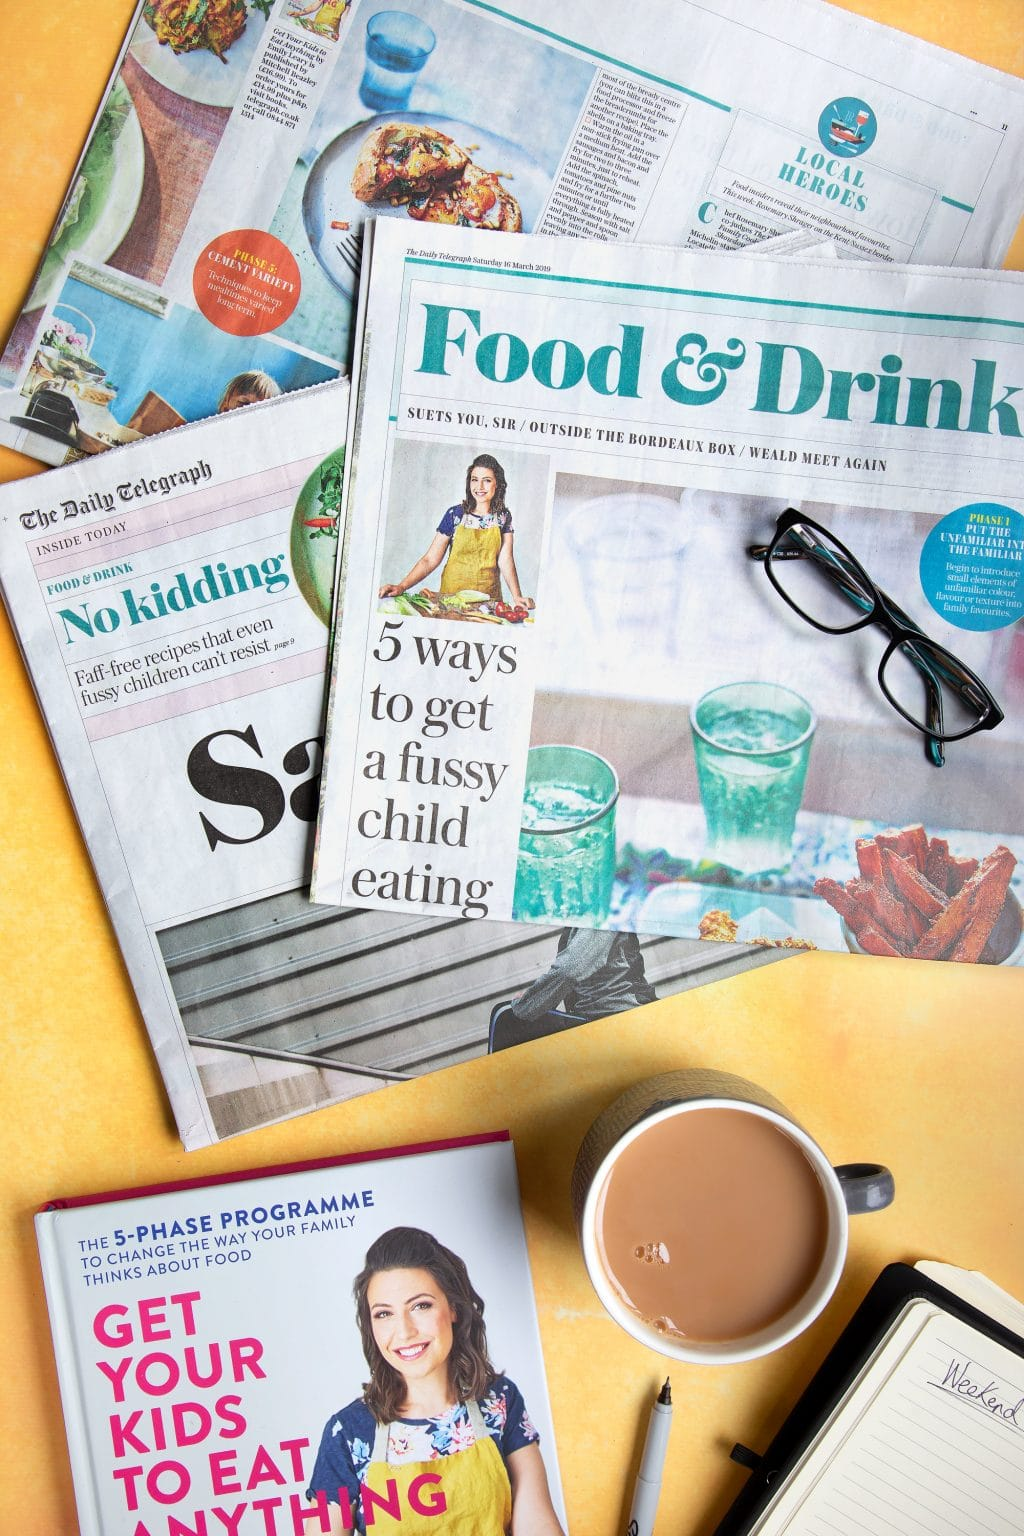 Overhead shot of glasses, newspapers, coffee, and Get Your Kids to Eat Anything cookbook